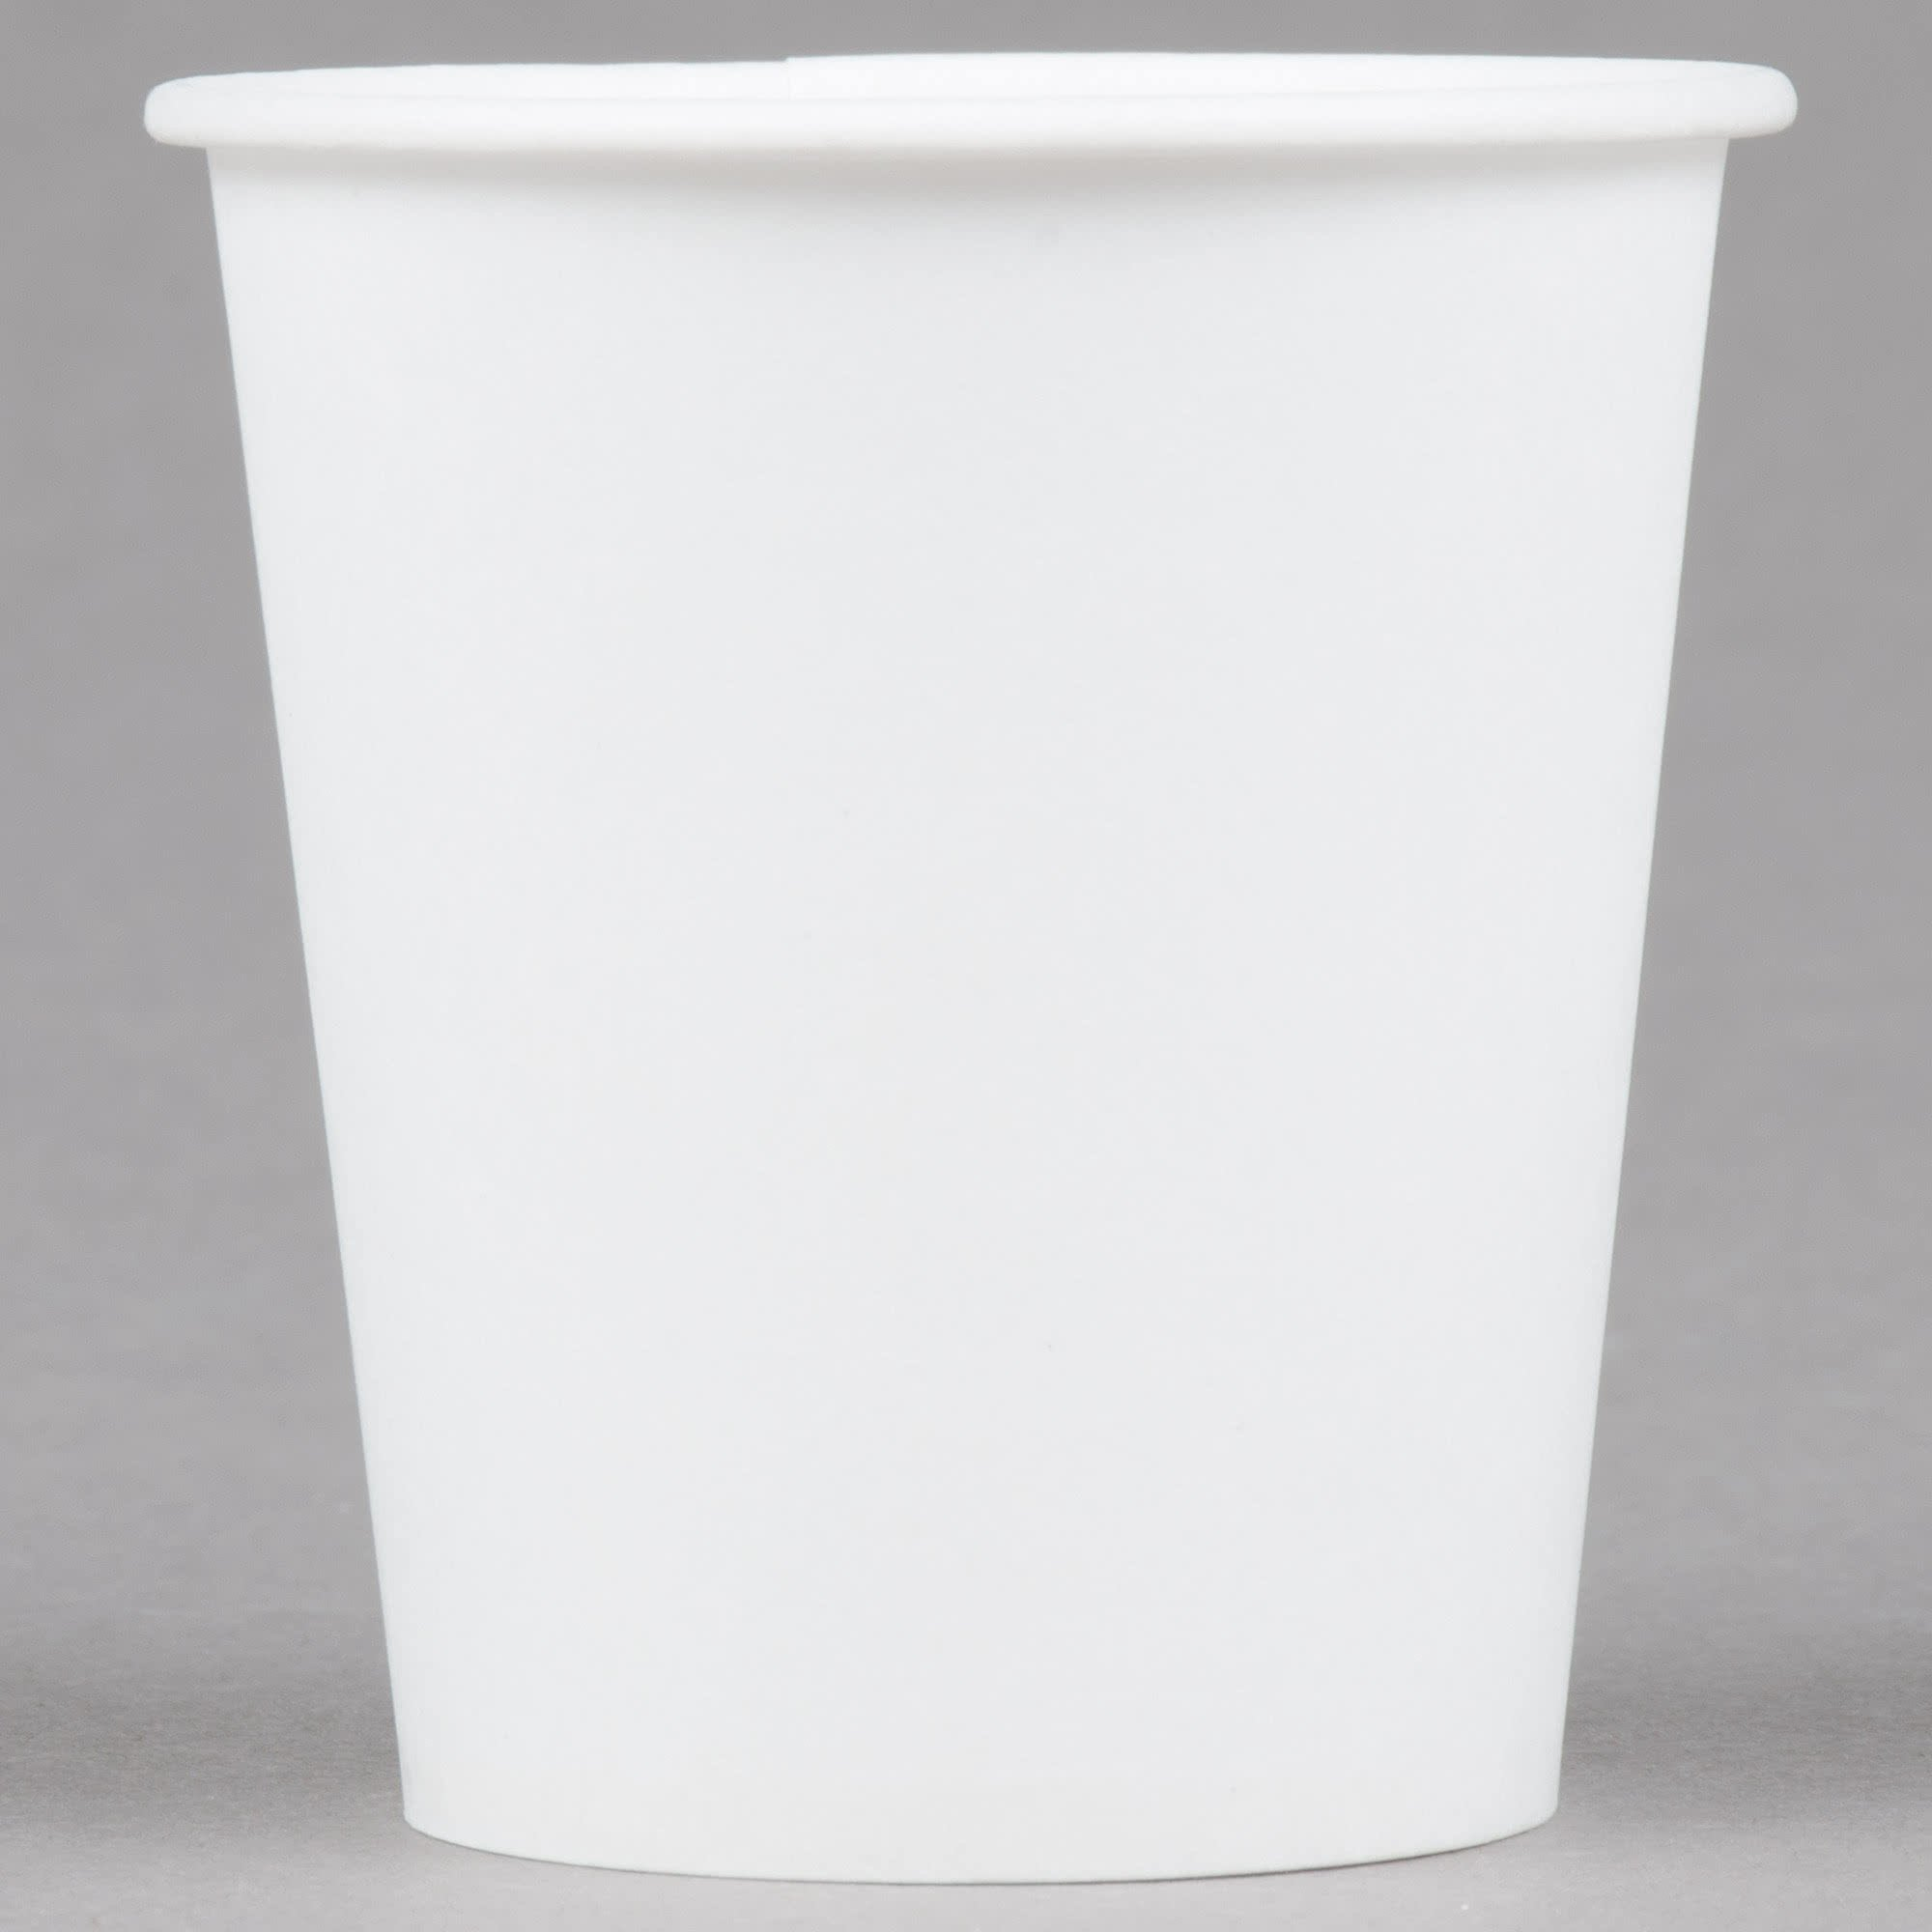 TableTop King 44-2050 Bare Eco-Forward 3 oz. Wax Treated White Paper Cold Cup - 5000/Case